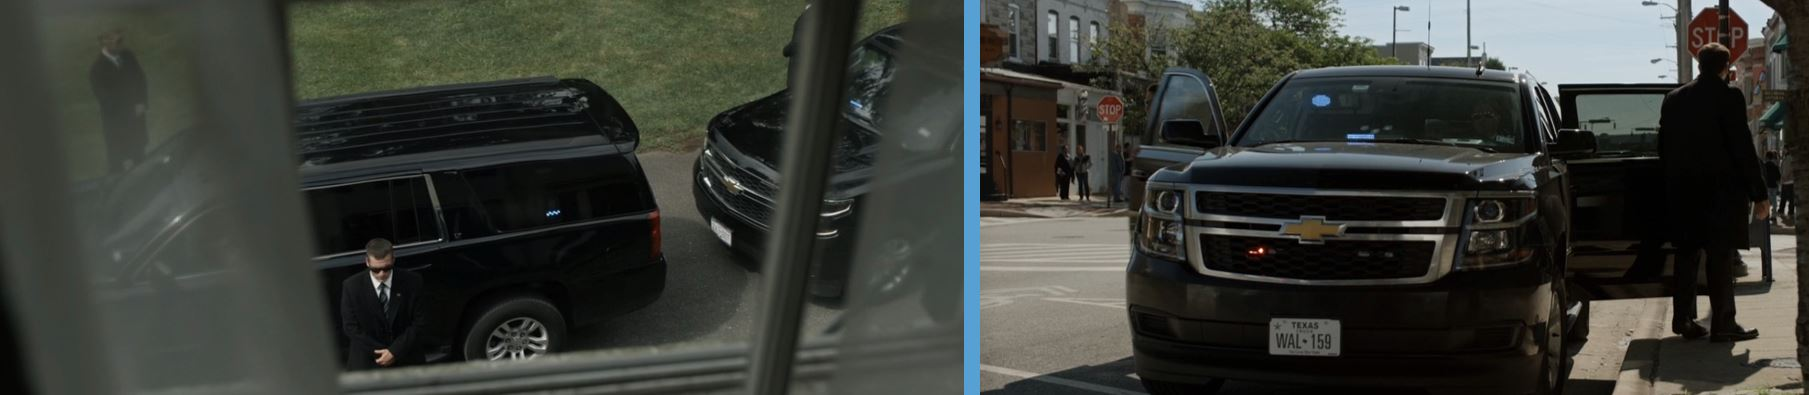 chevrolet suv car suburban in house of cards season 4